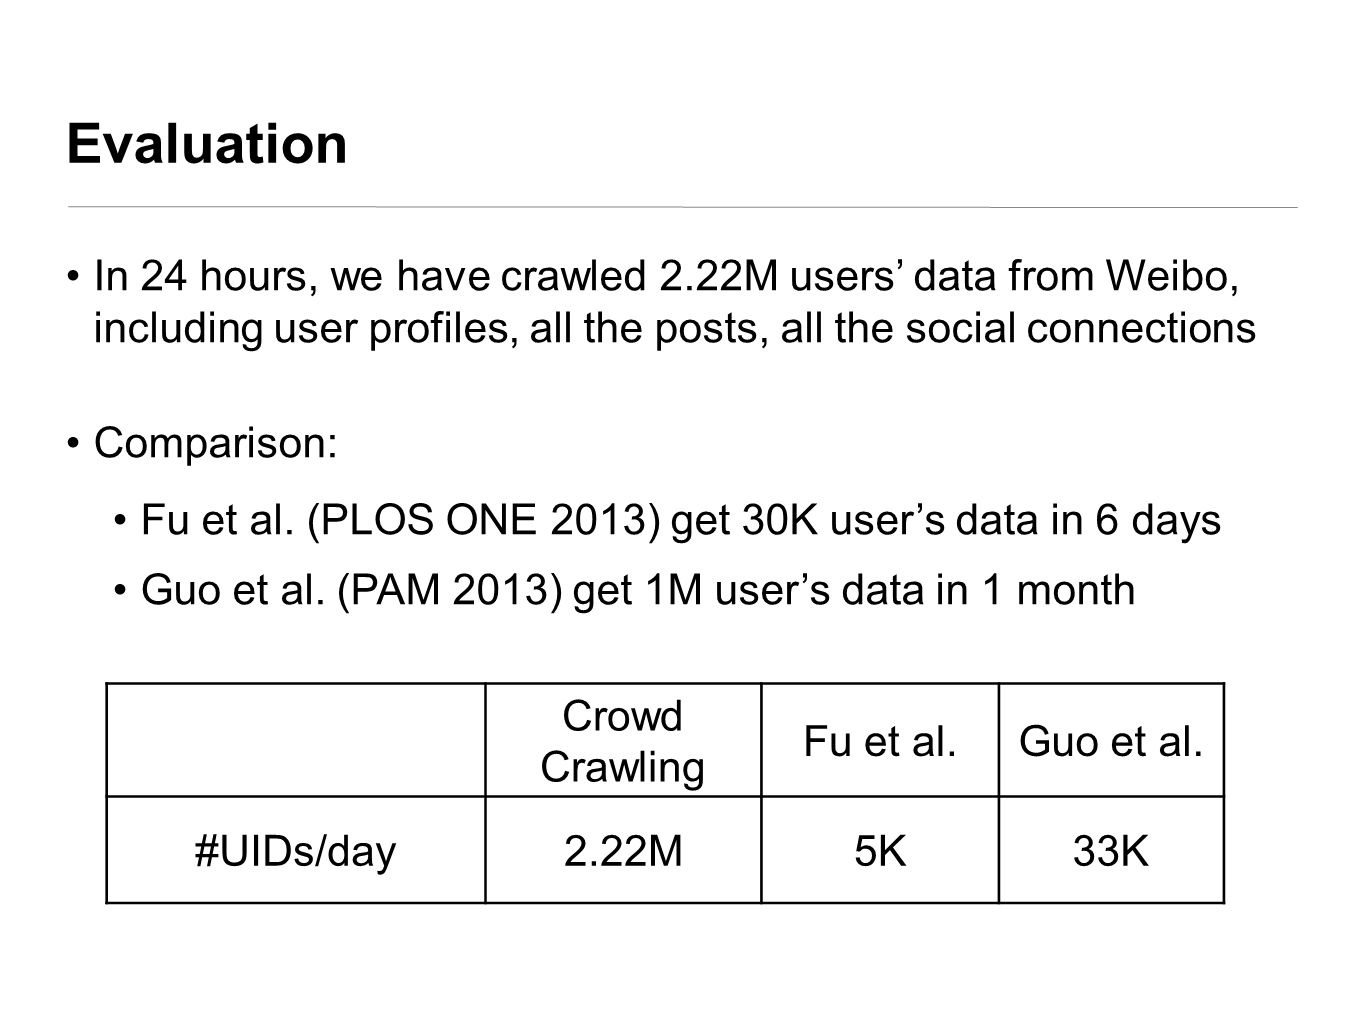 Evaluation In 24 hours, we have crawled 2.22M users' data from Weibo, including user profiles, all the posts, all the social connections.